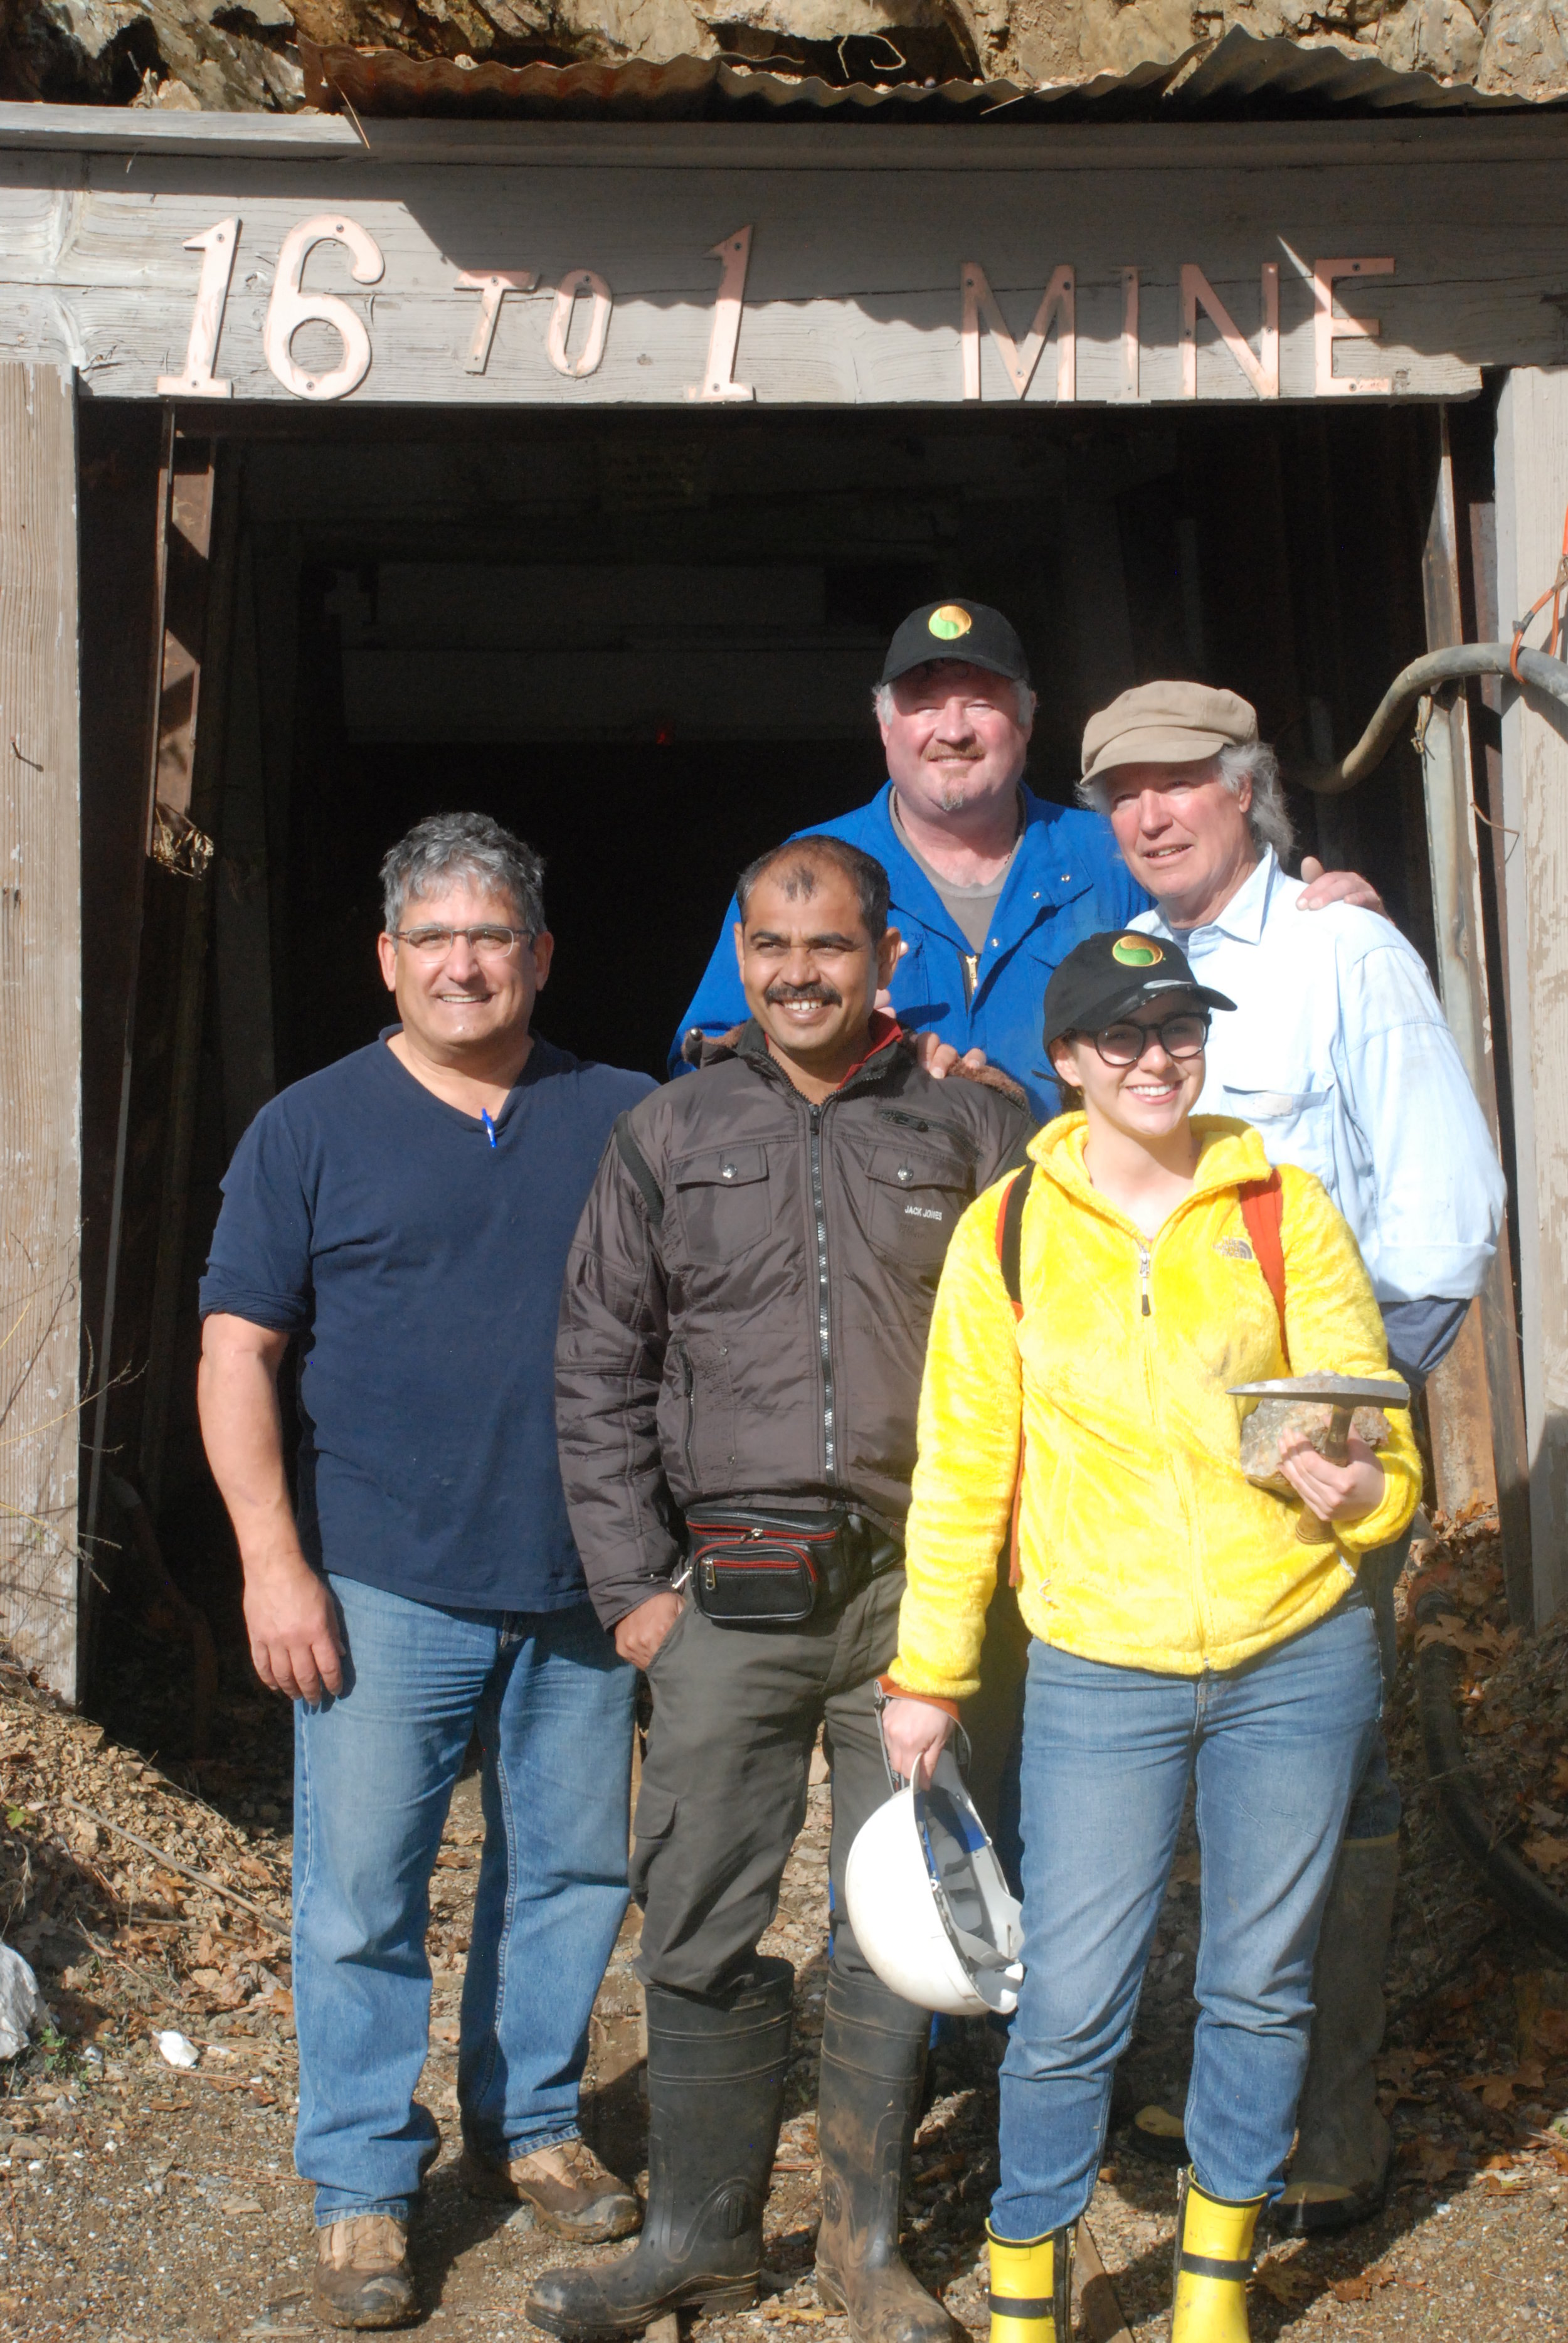 Mentor Rob takes Professor Wagh, Swami Ramanad Terth Marathwada University, India and UC Davis student, Ronit Zavodivker and I into the 16 to One Gold Mine, Allegany, California